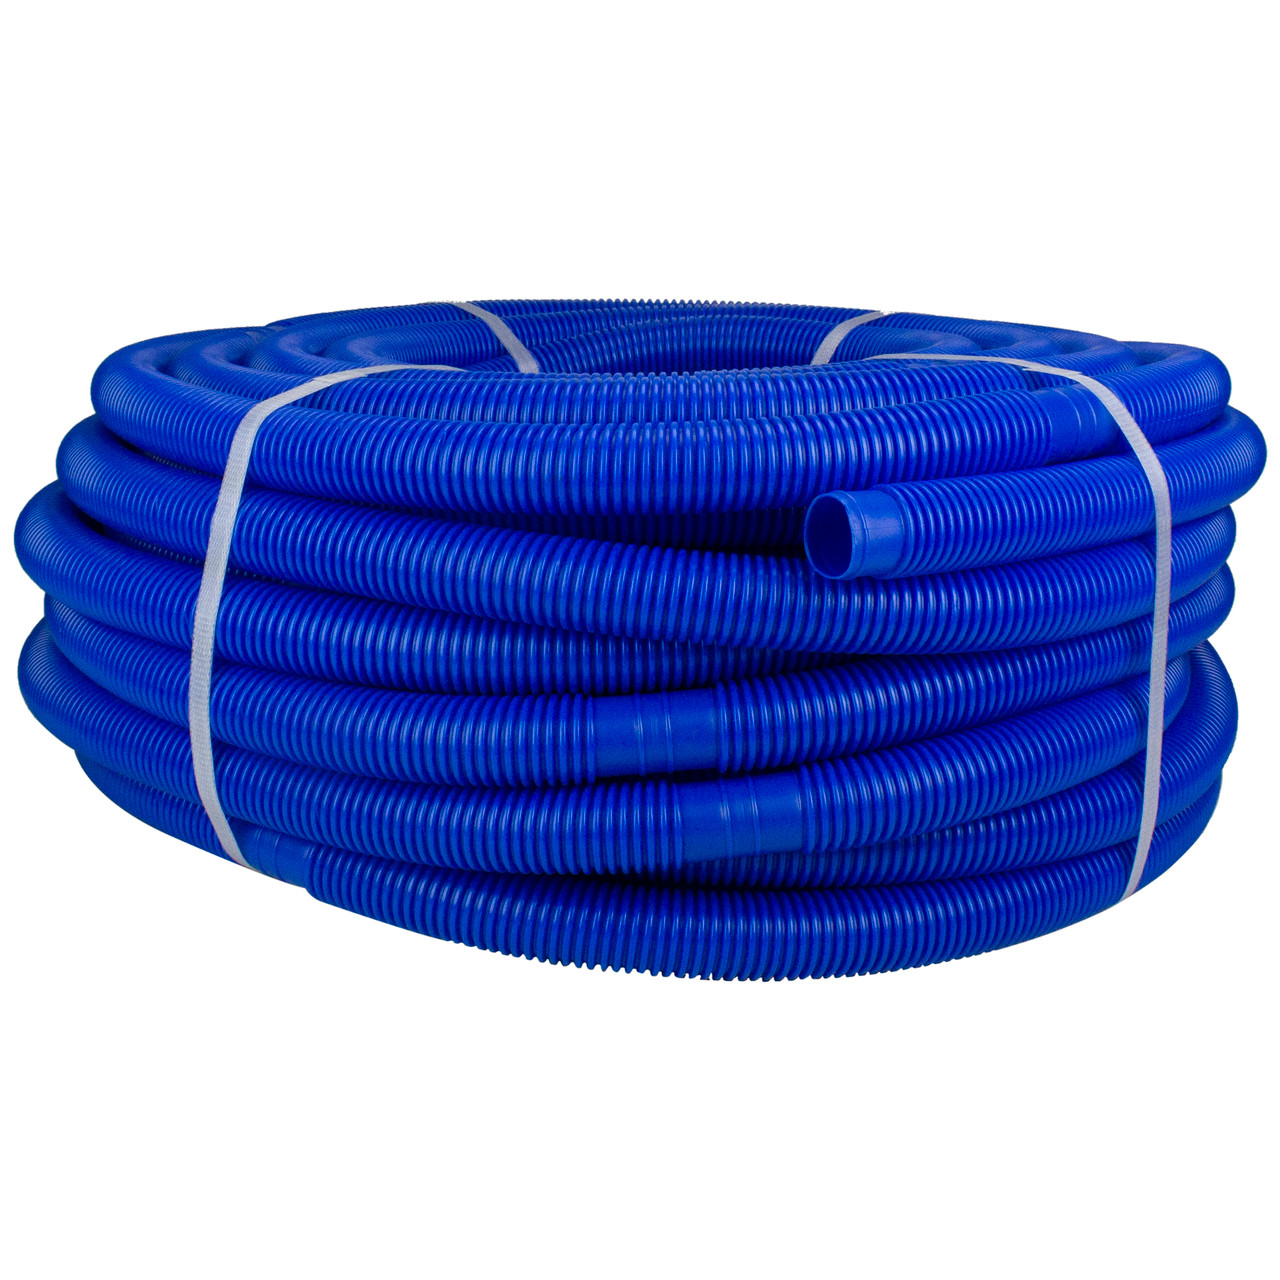 Pool Hose Blue Blow Molded Pe In Ground Swimming Pool Cuttable Vacuum Hose 147 5 X 1 25